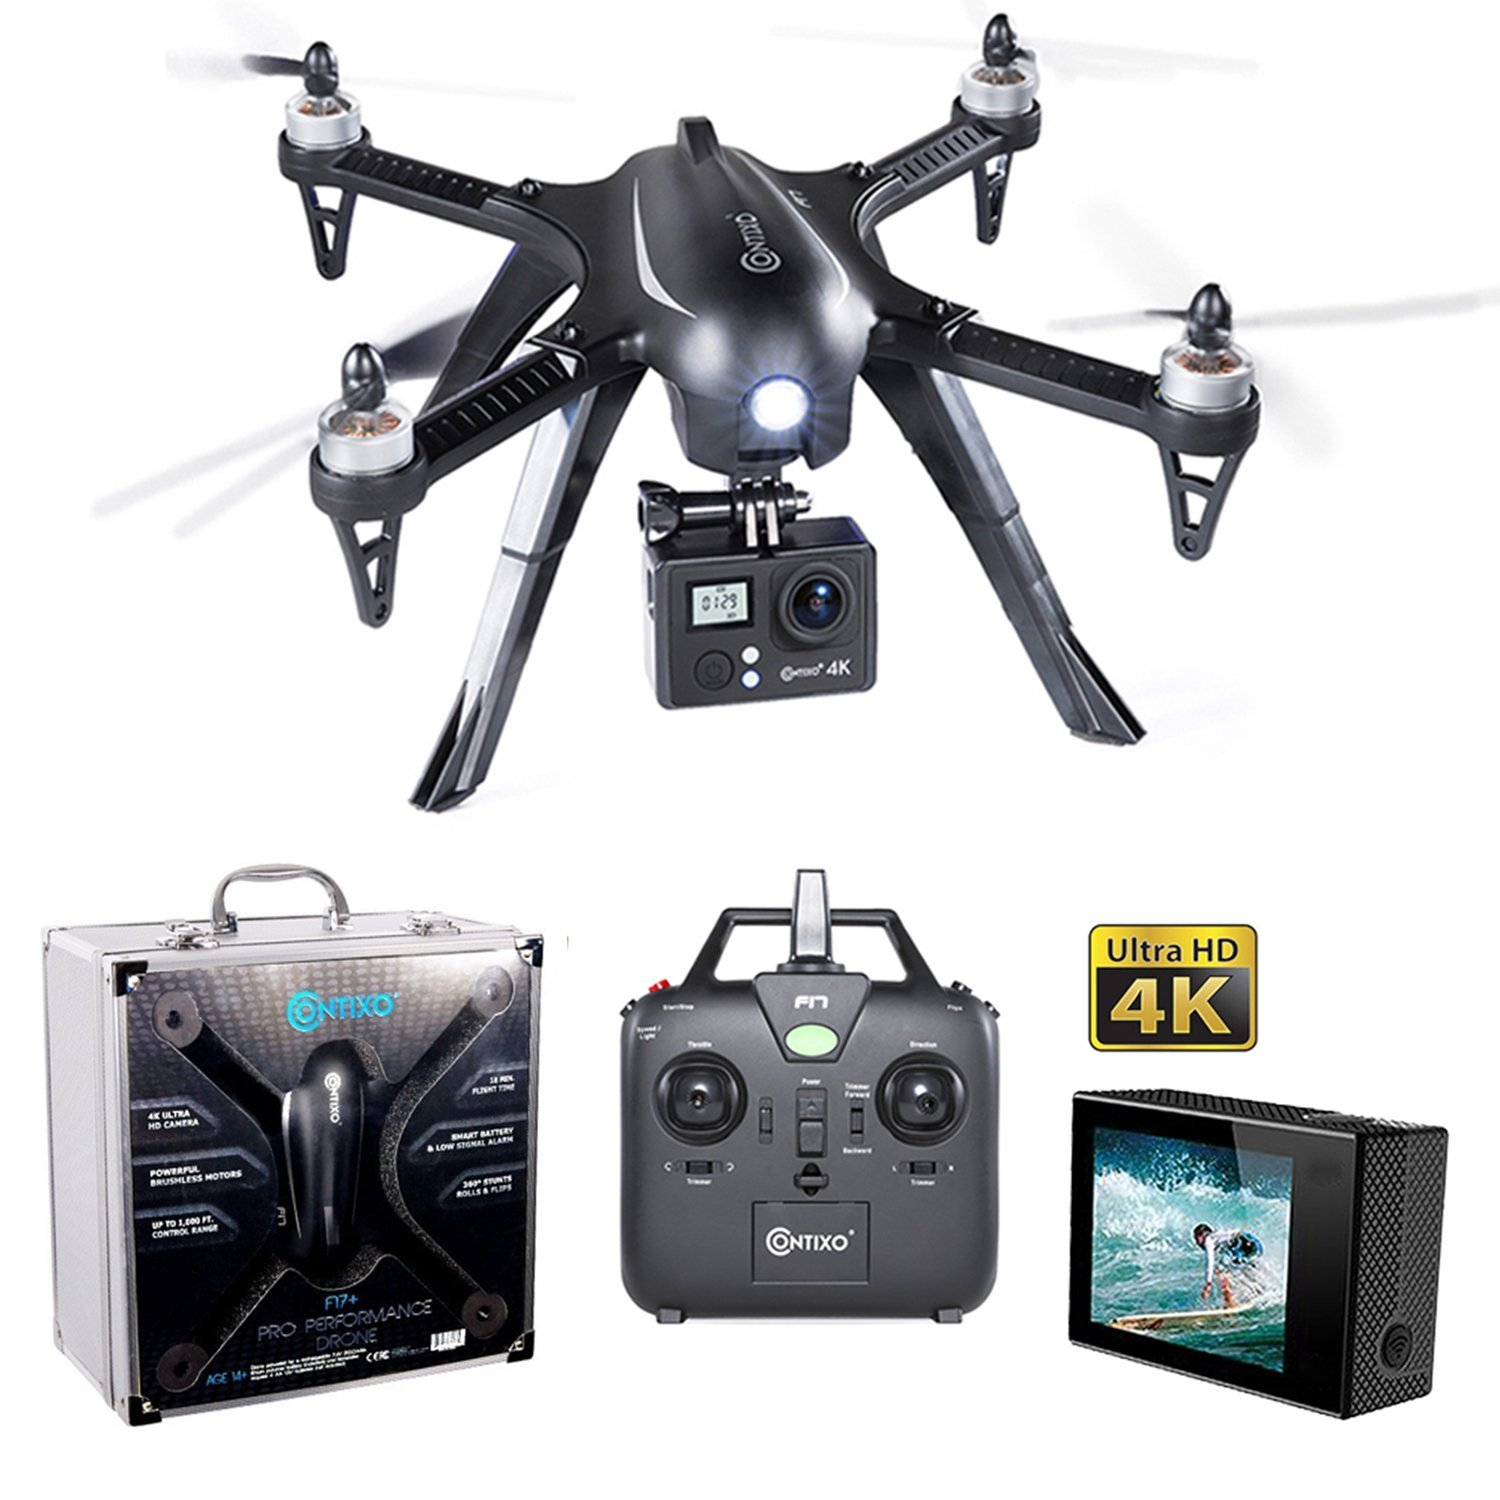 dragonfly rc helicopter with Best Quality Drones Under 1000 on Watch additionally Best Quality Drones Under 1000 together with Walkera Airwolf Rc Helicopter furthermore Rc Helicopter Outdoor Beginner besides It S A Walkera Dragonfly 36 B T5202.